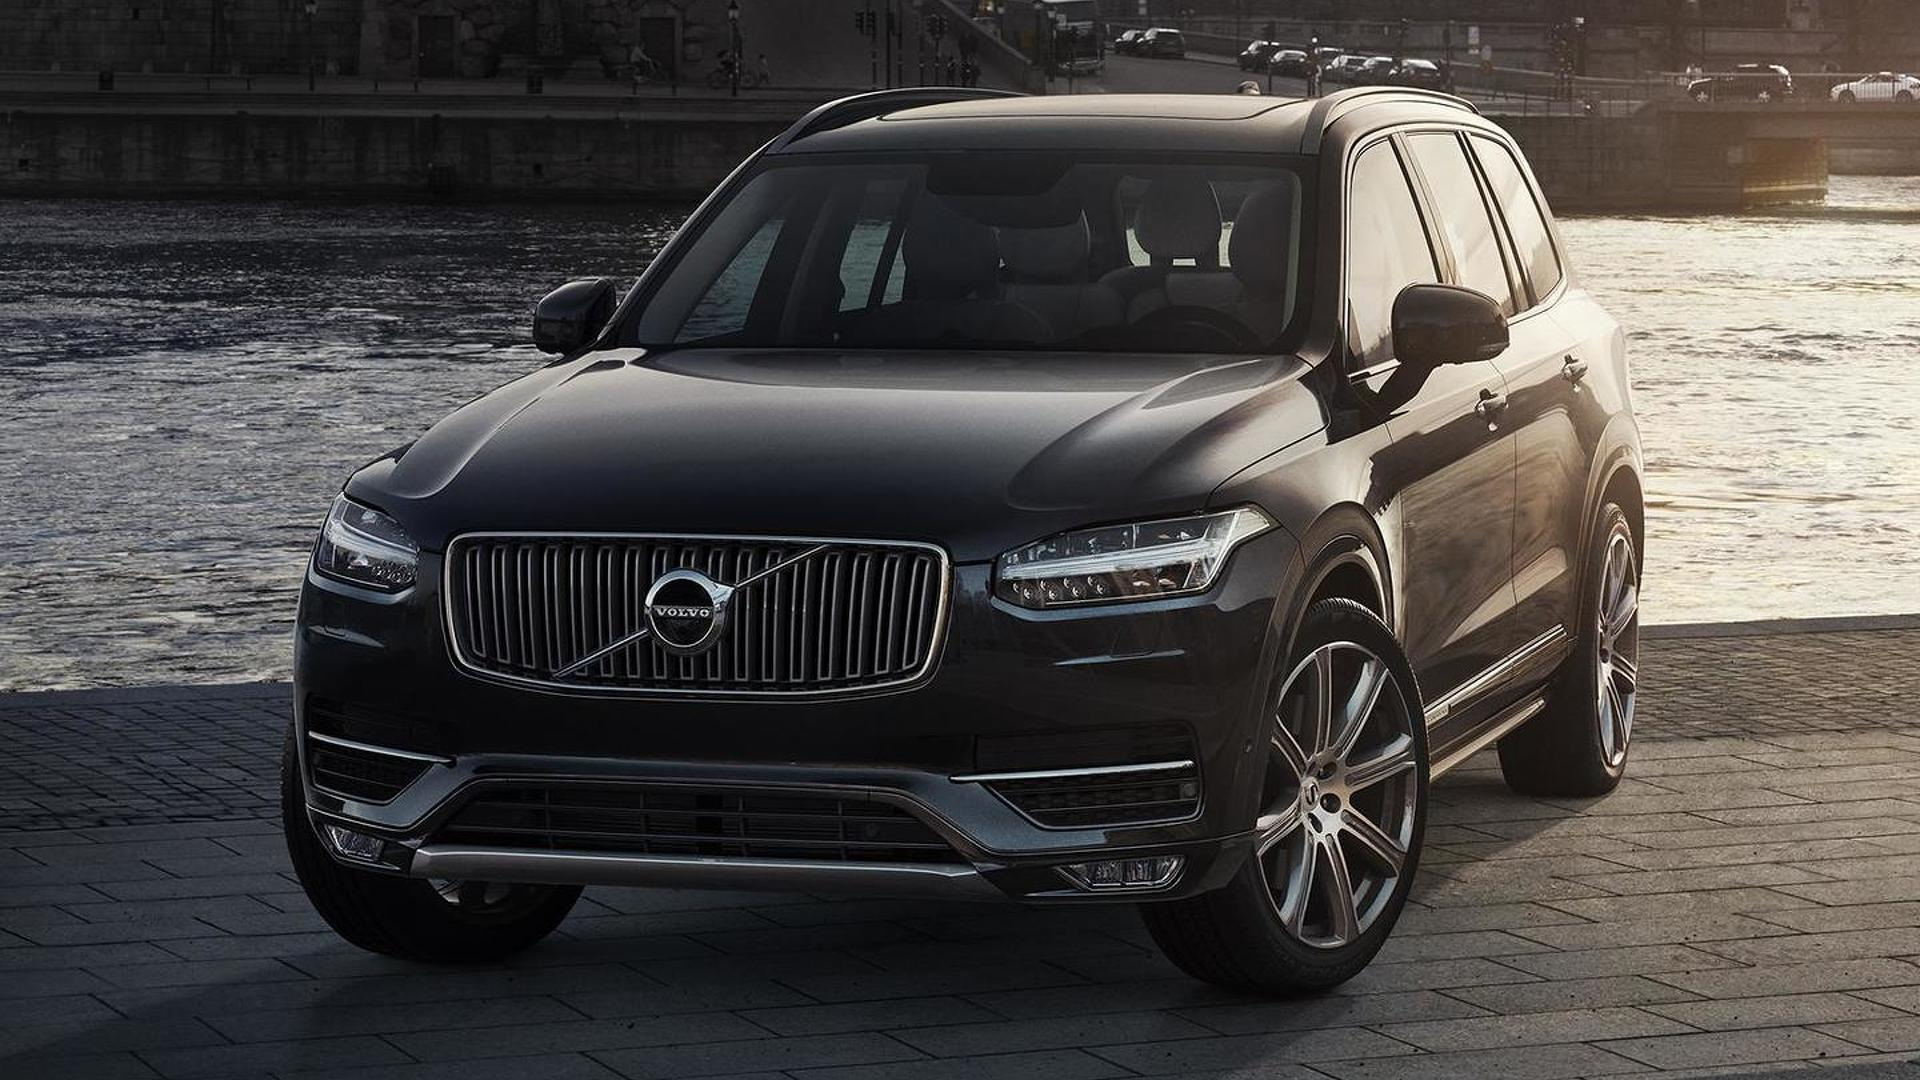 2015 Volvo Xc90 Test Drive Safety And Dynamism